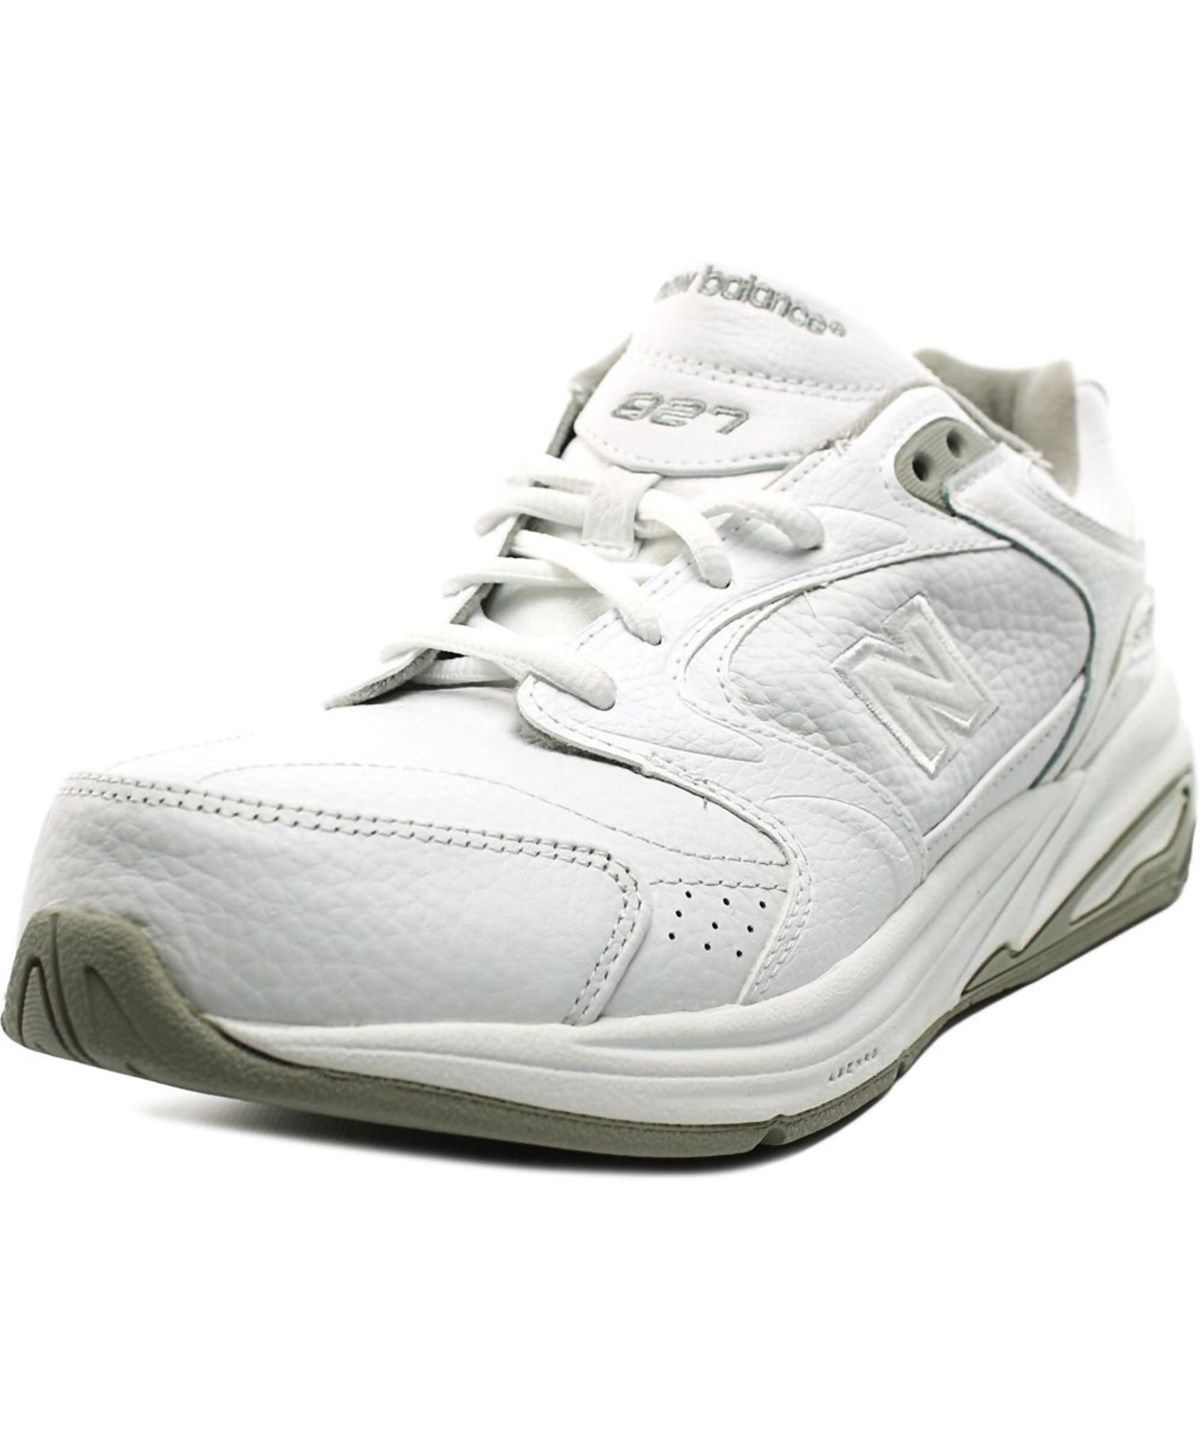 cd2e1a96a60c1 ... czech new balance new balance mw927 men 4e round toe leather white  sneakers. newbalance d35d9